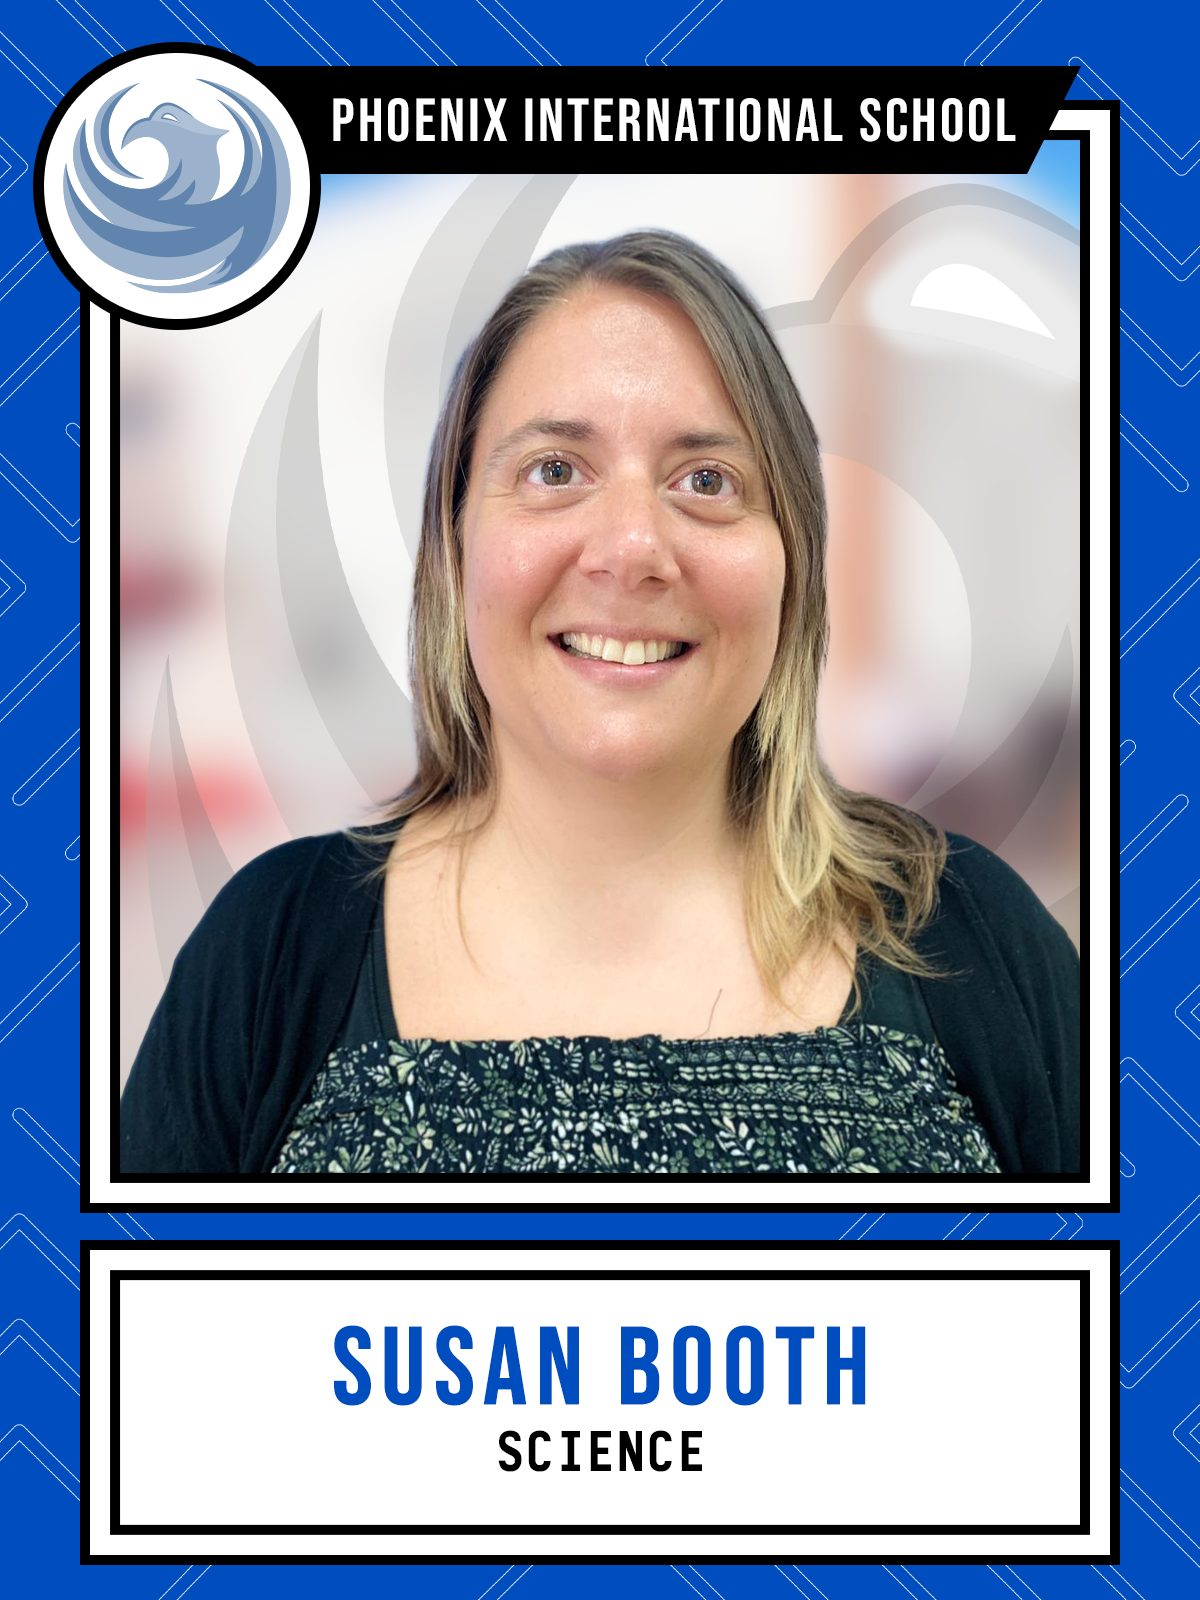 Susan Booth - Science